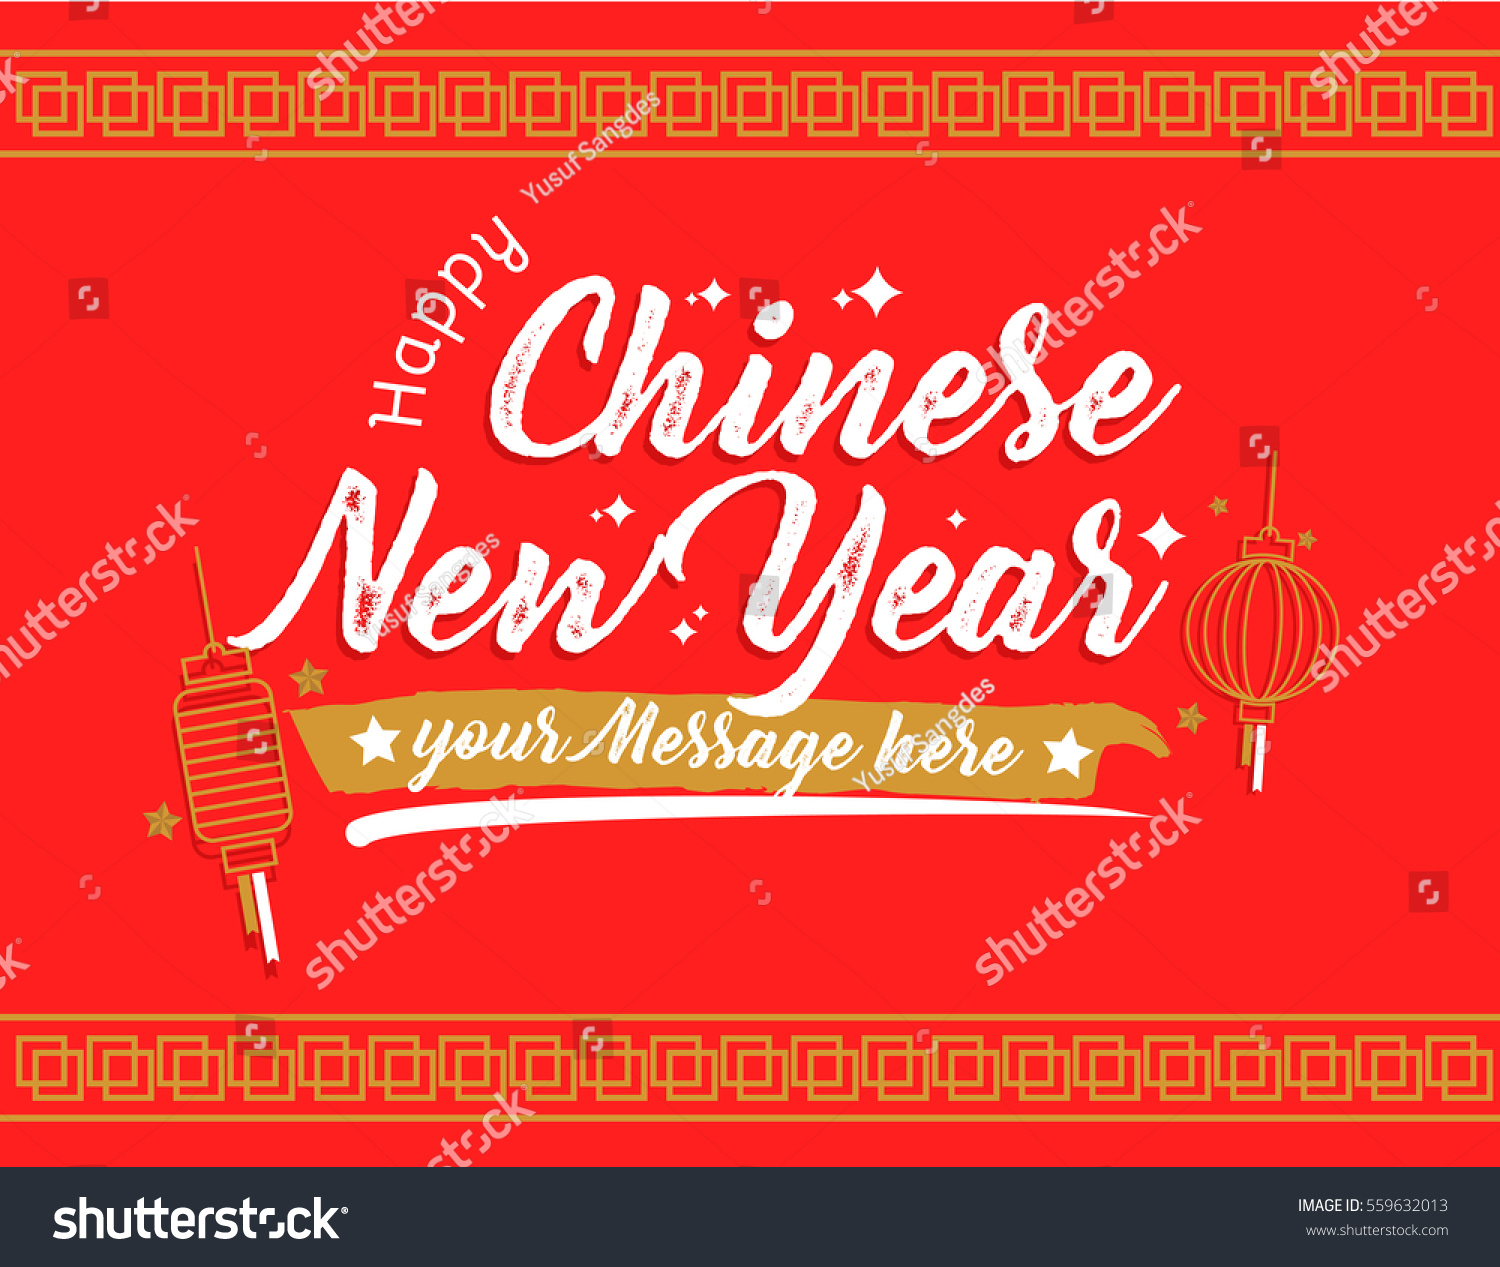 Chinese new year 2017 hand lettering stock vector 559632013 chinese new year 2017 hand lettering calligraphy in red background for greeting card poster and kristyandbryce Gallery